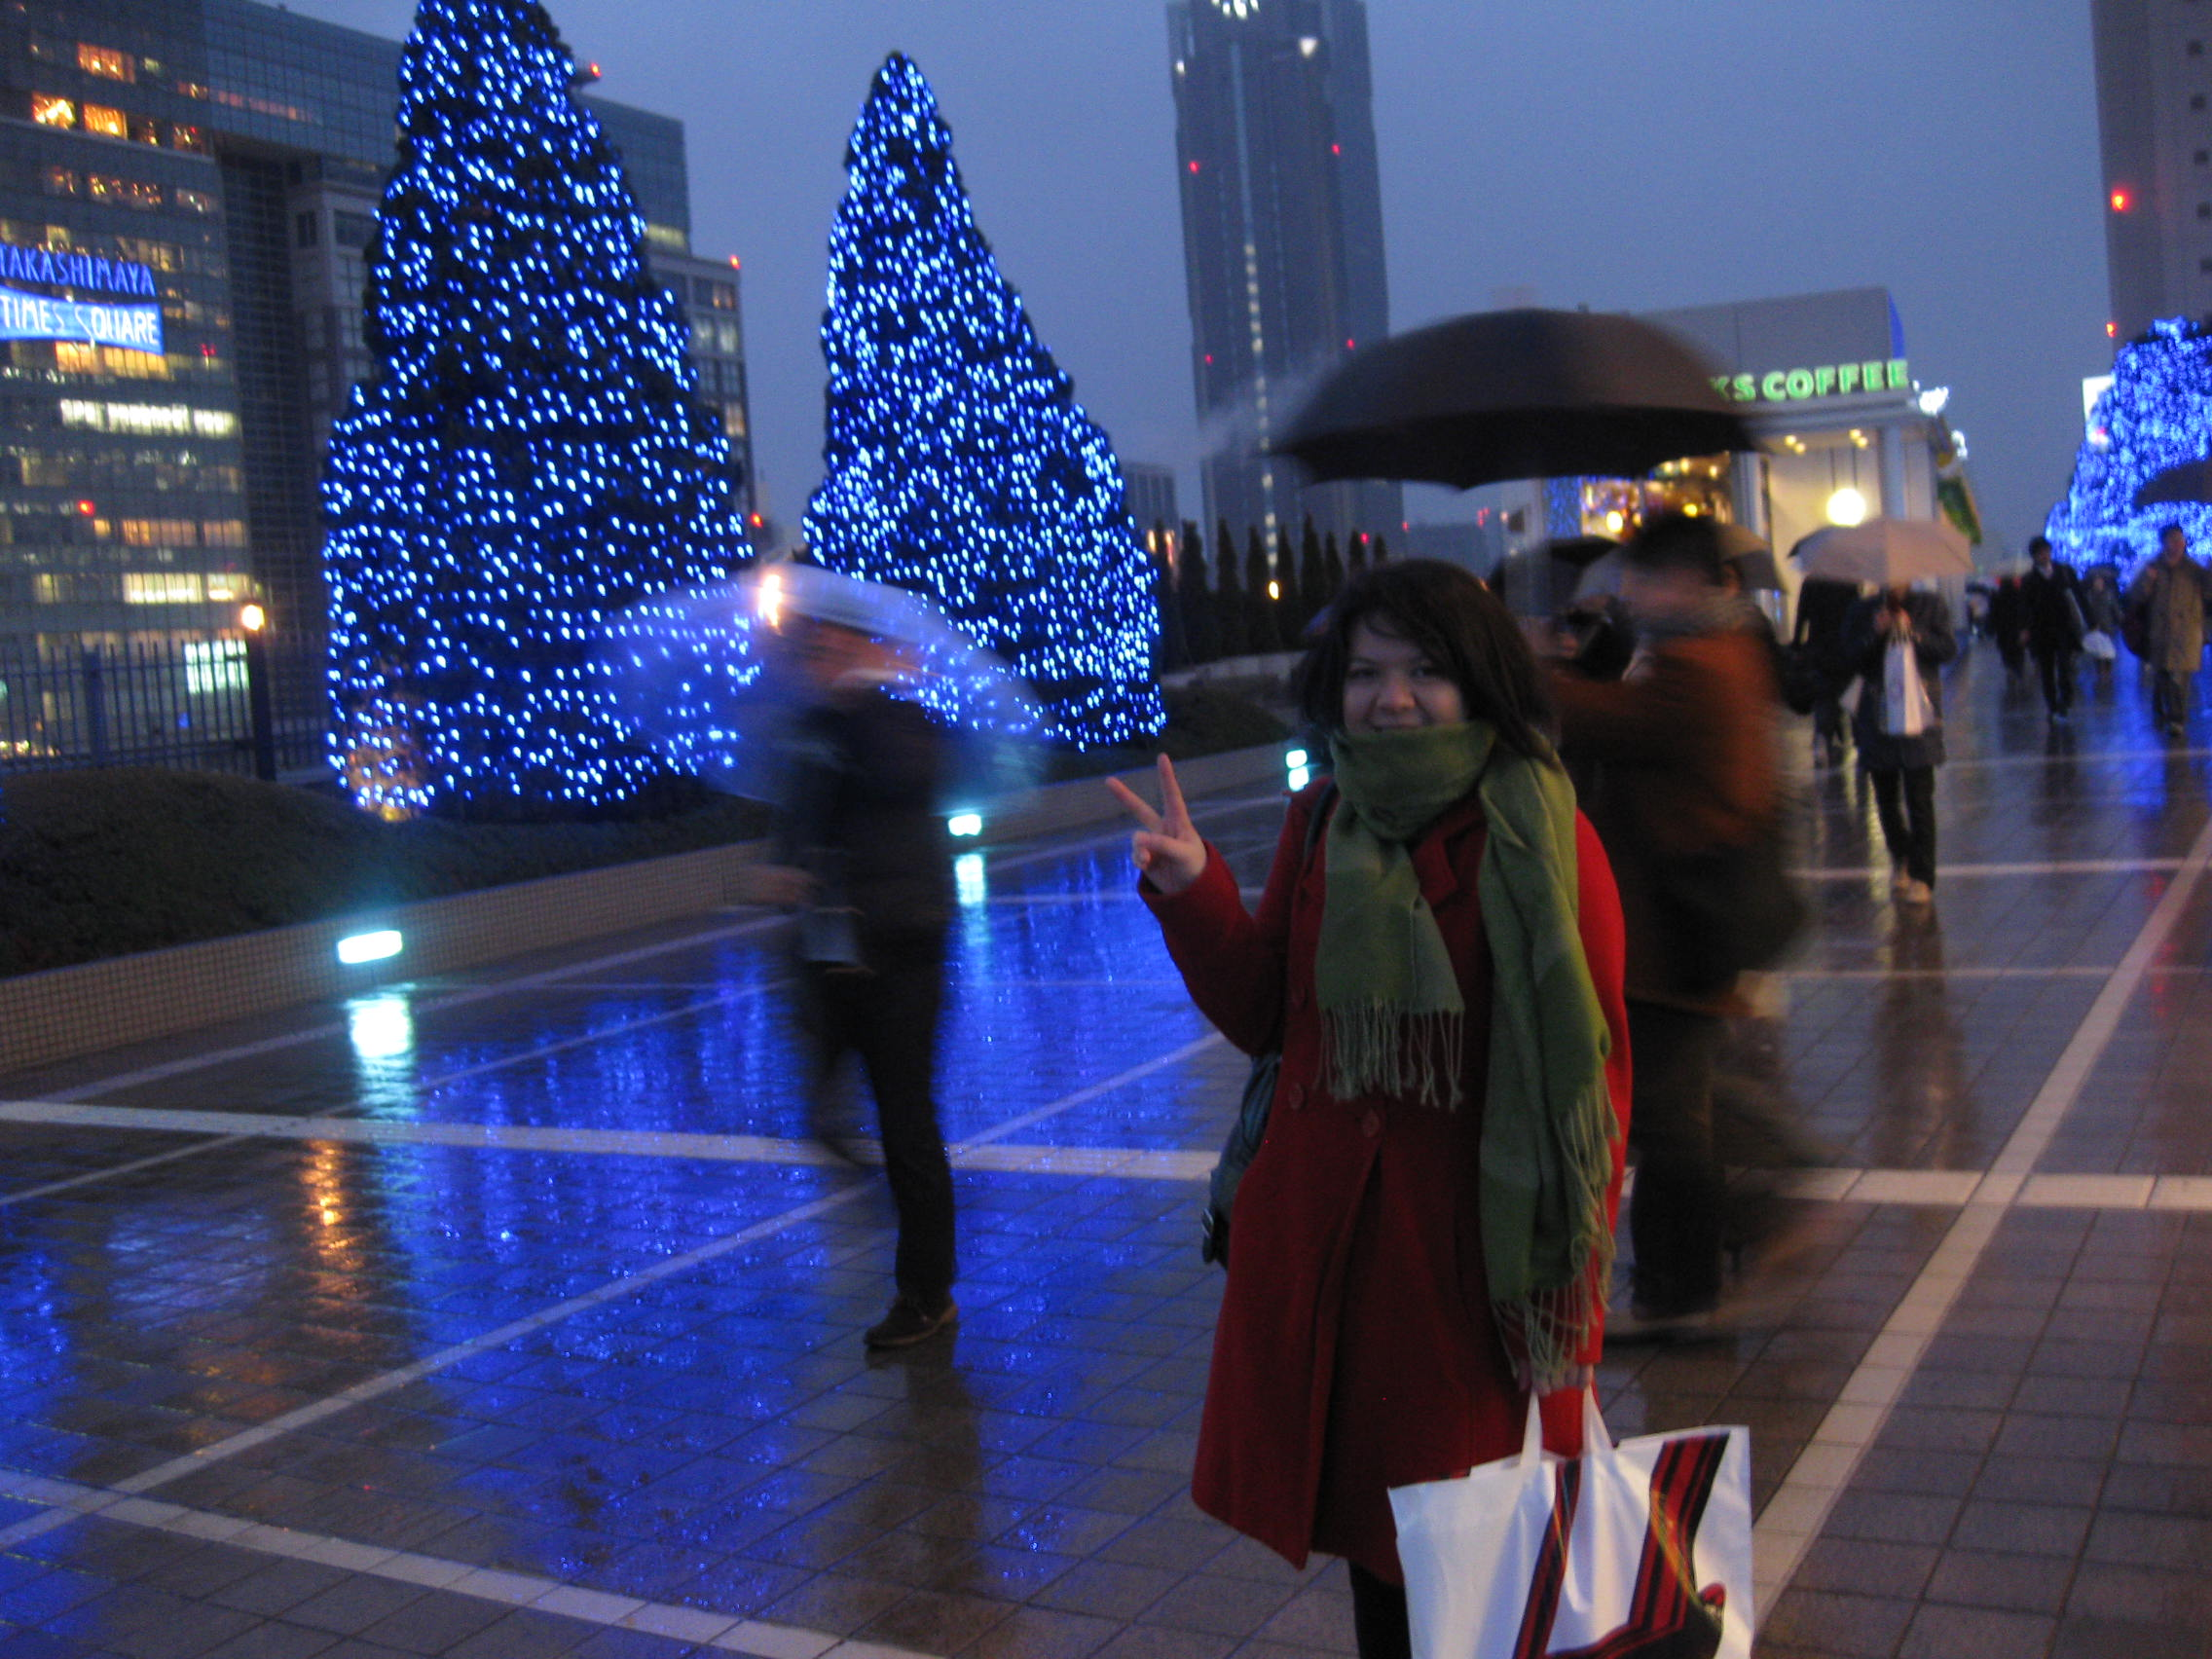 Japan Christmas.5 Reasons Christmas Is Different In Japan